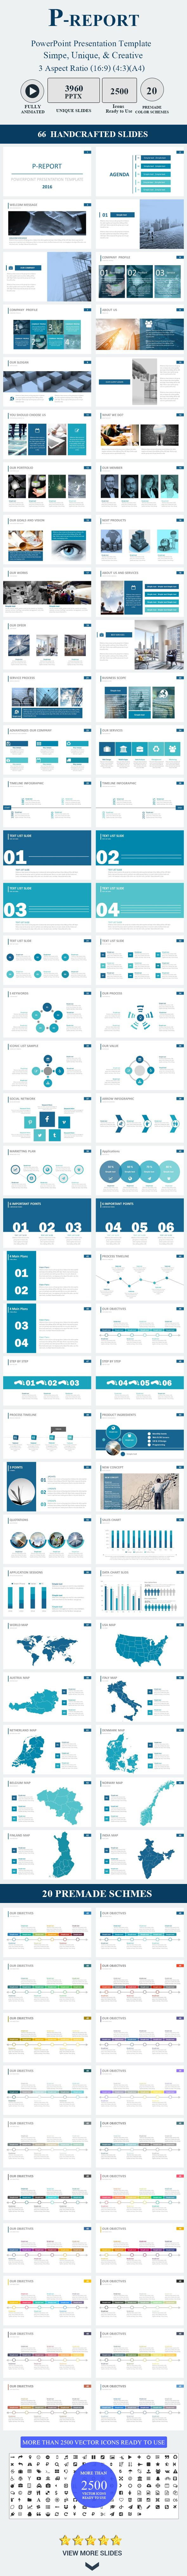 P-Report PowerPoint Presentation Template. Download here: http://graphicriver.net/item/preport-powerpoint-presentation-template/15687396?ref=ksioks